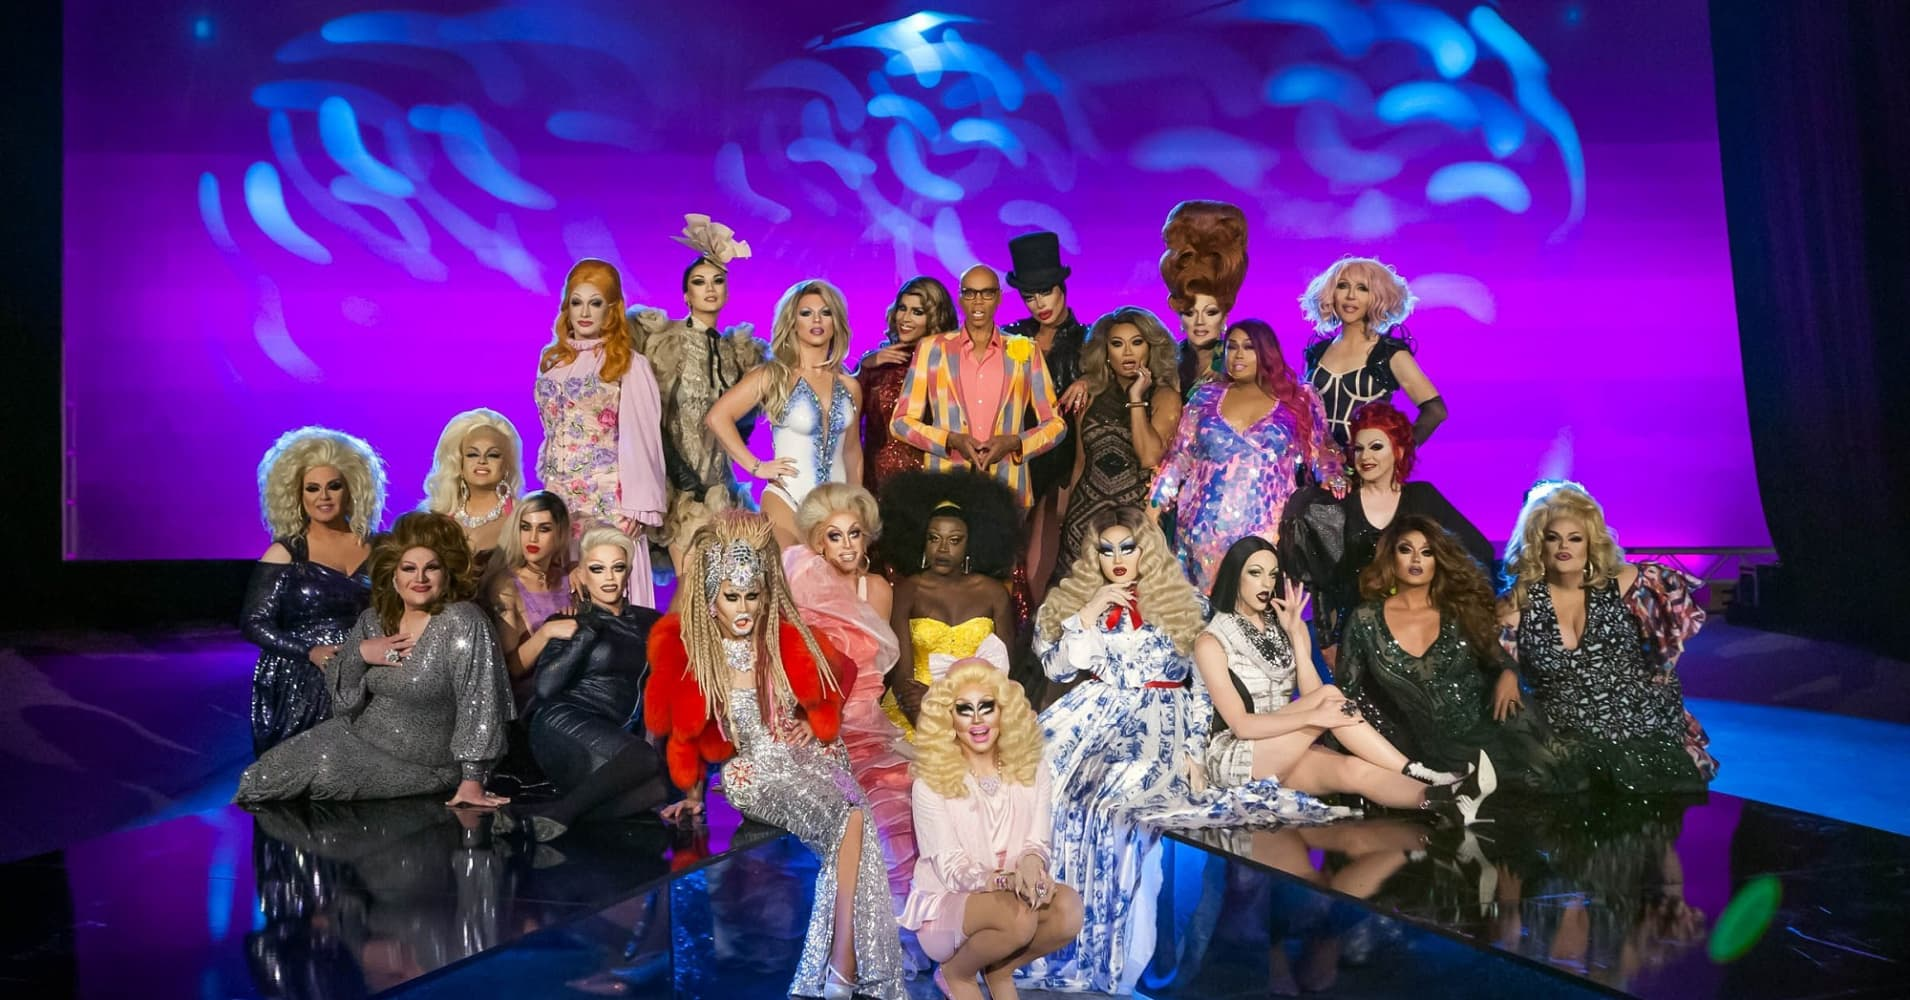 Various contestants from Drag Race, Seasons 1 to 9